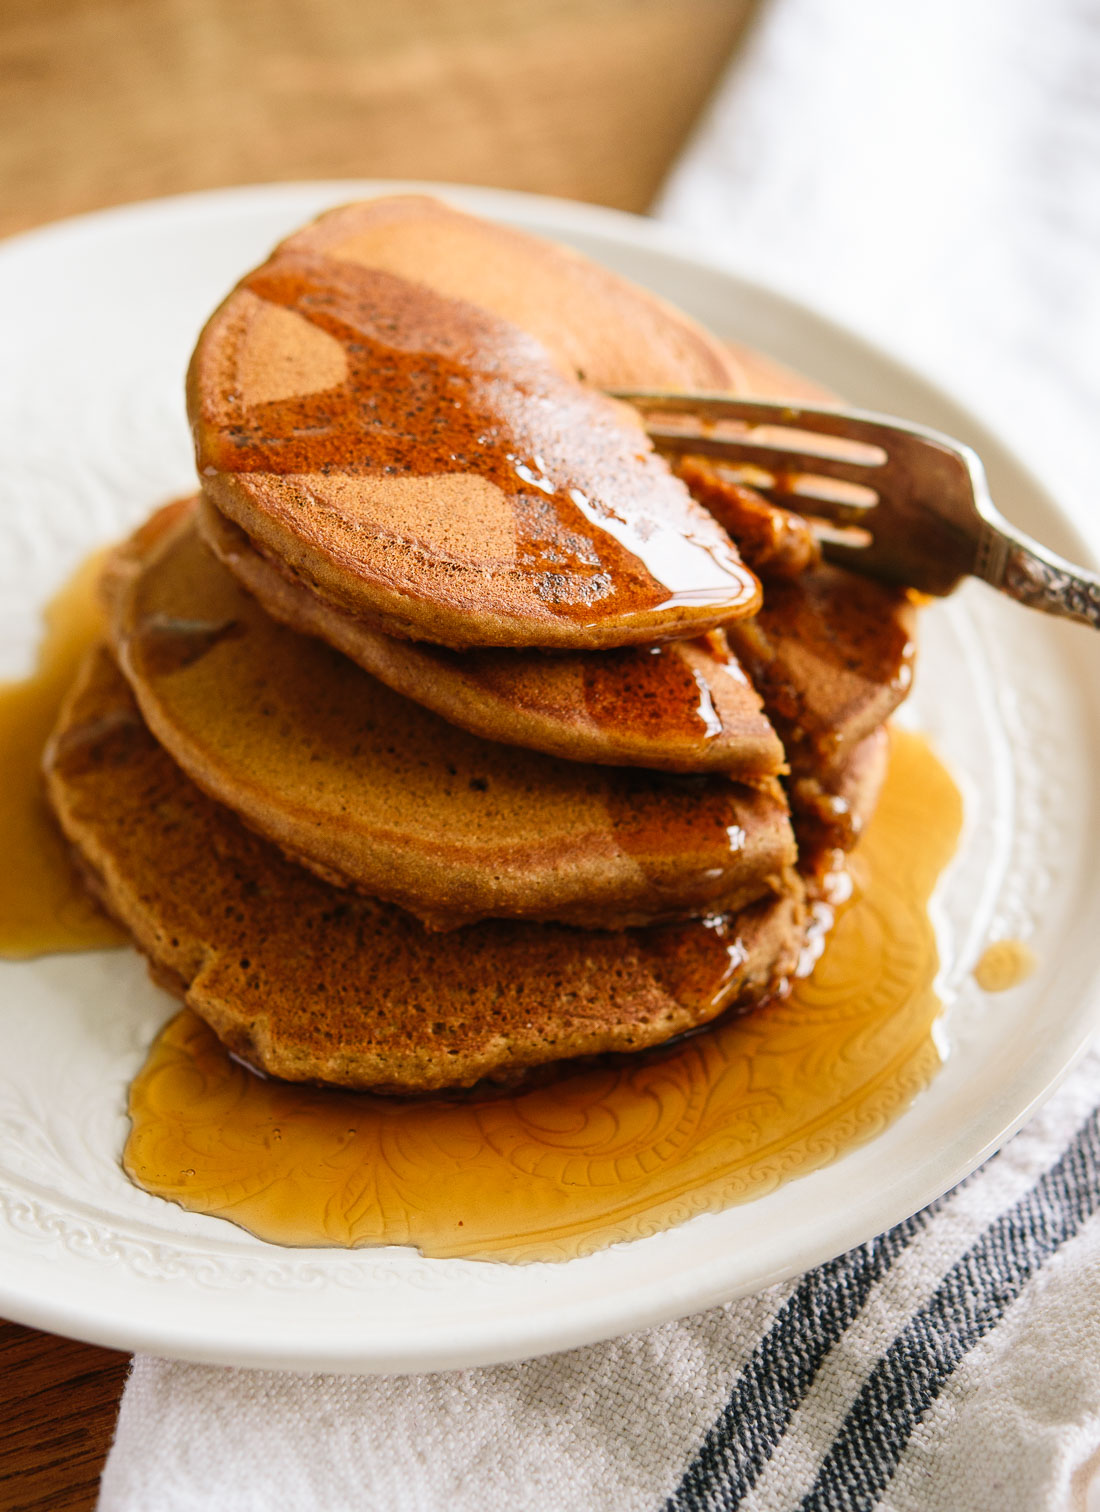 How to Make Whole Wheat Gingerbread Pancakes